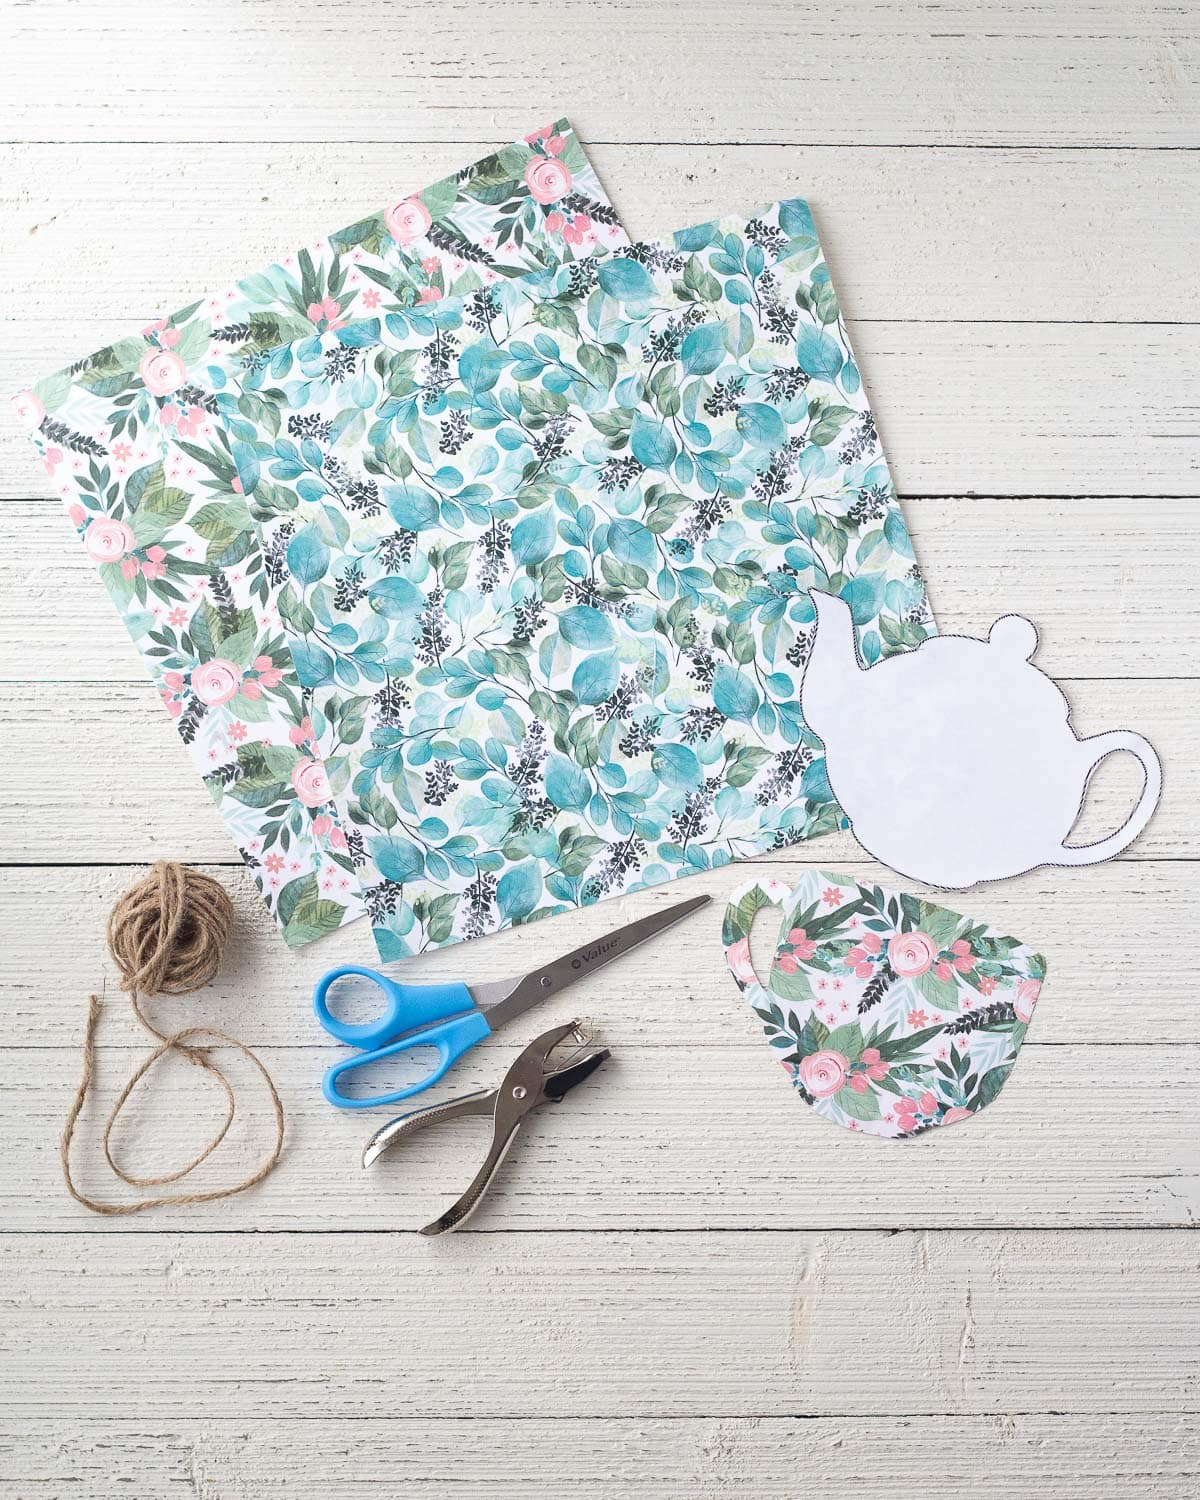 Teapot template, scrapbook paper, scissors, hole punch, and twine on a wooden surface.